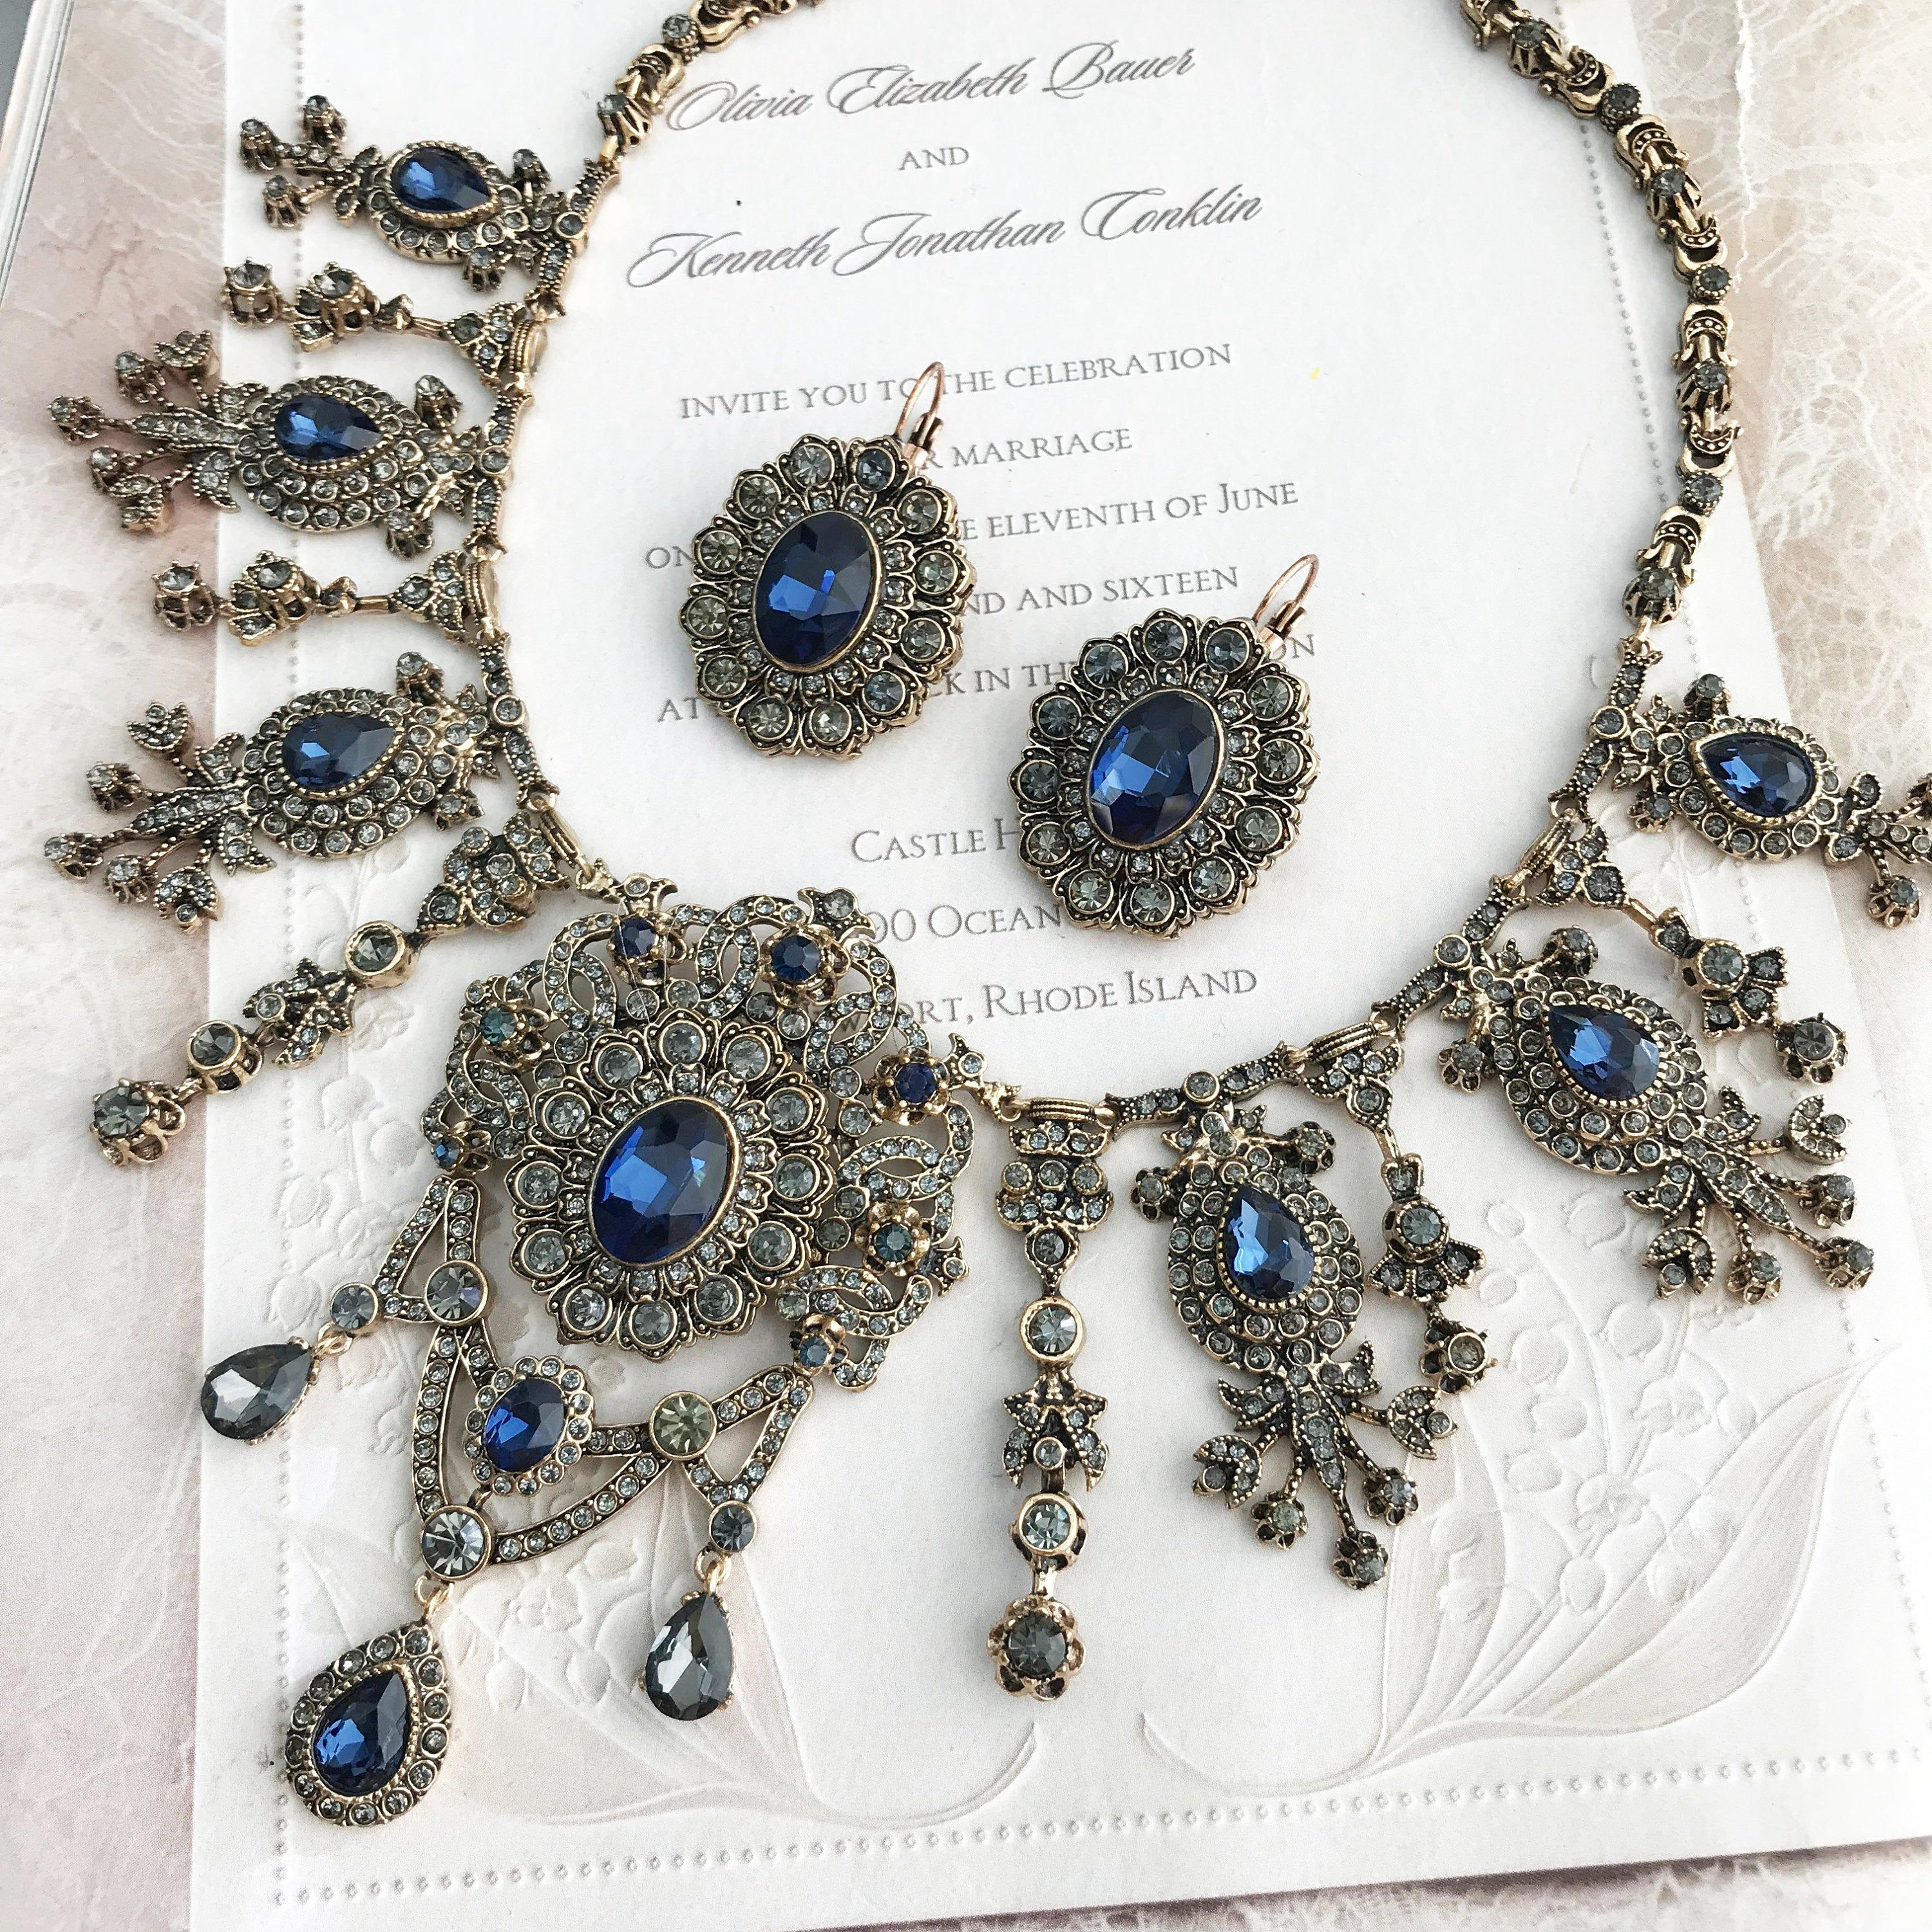 Gothic Jewelry Bridal Jewelry Set Sapphire Blue Jewelry Bronze Antique Gold Necklace Earrings Bracelet,Vintage Inspired Victorian Jewelry